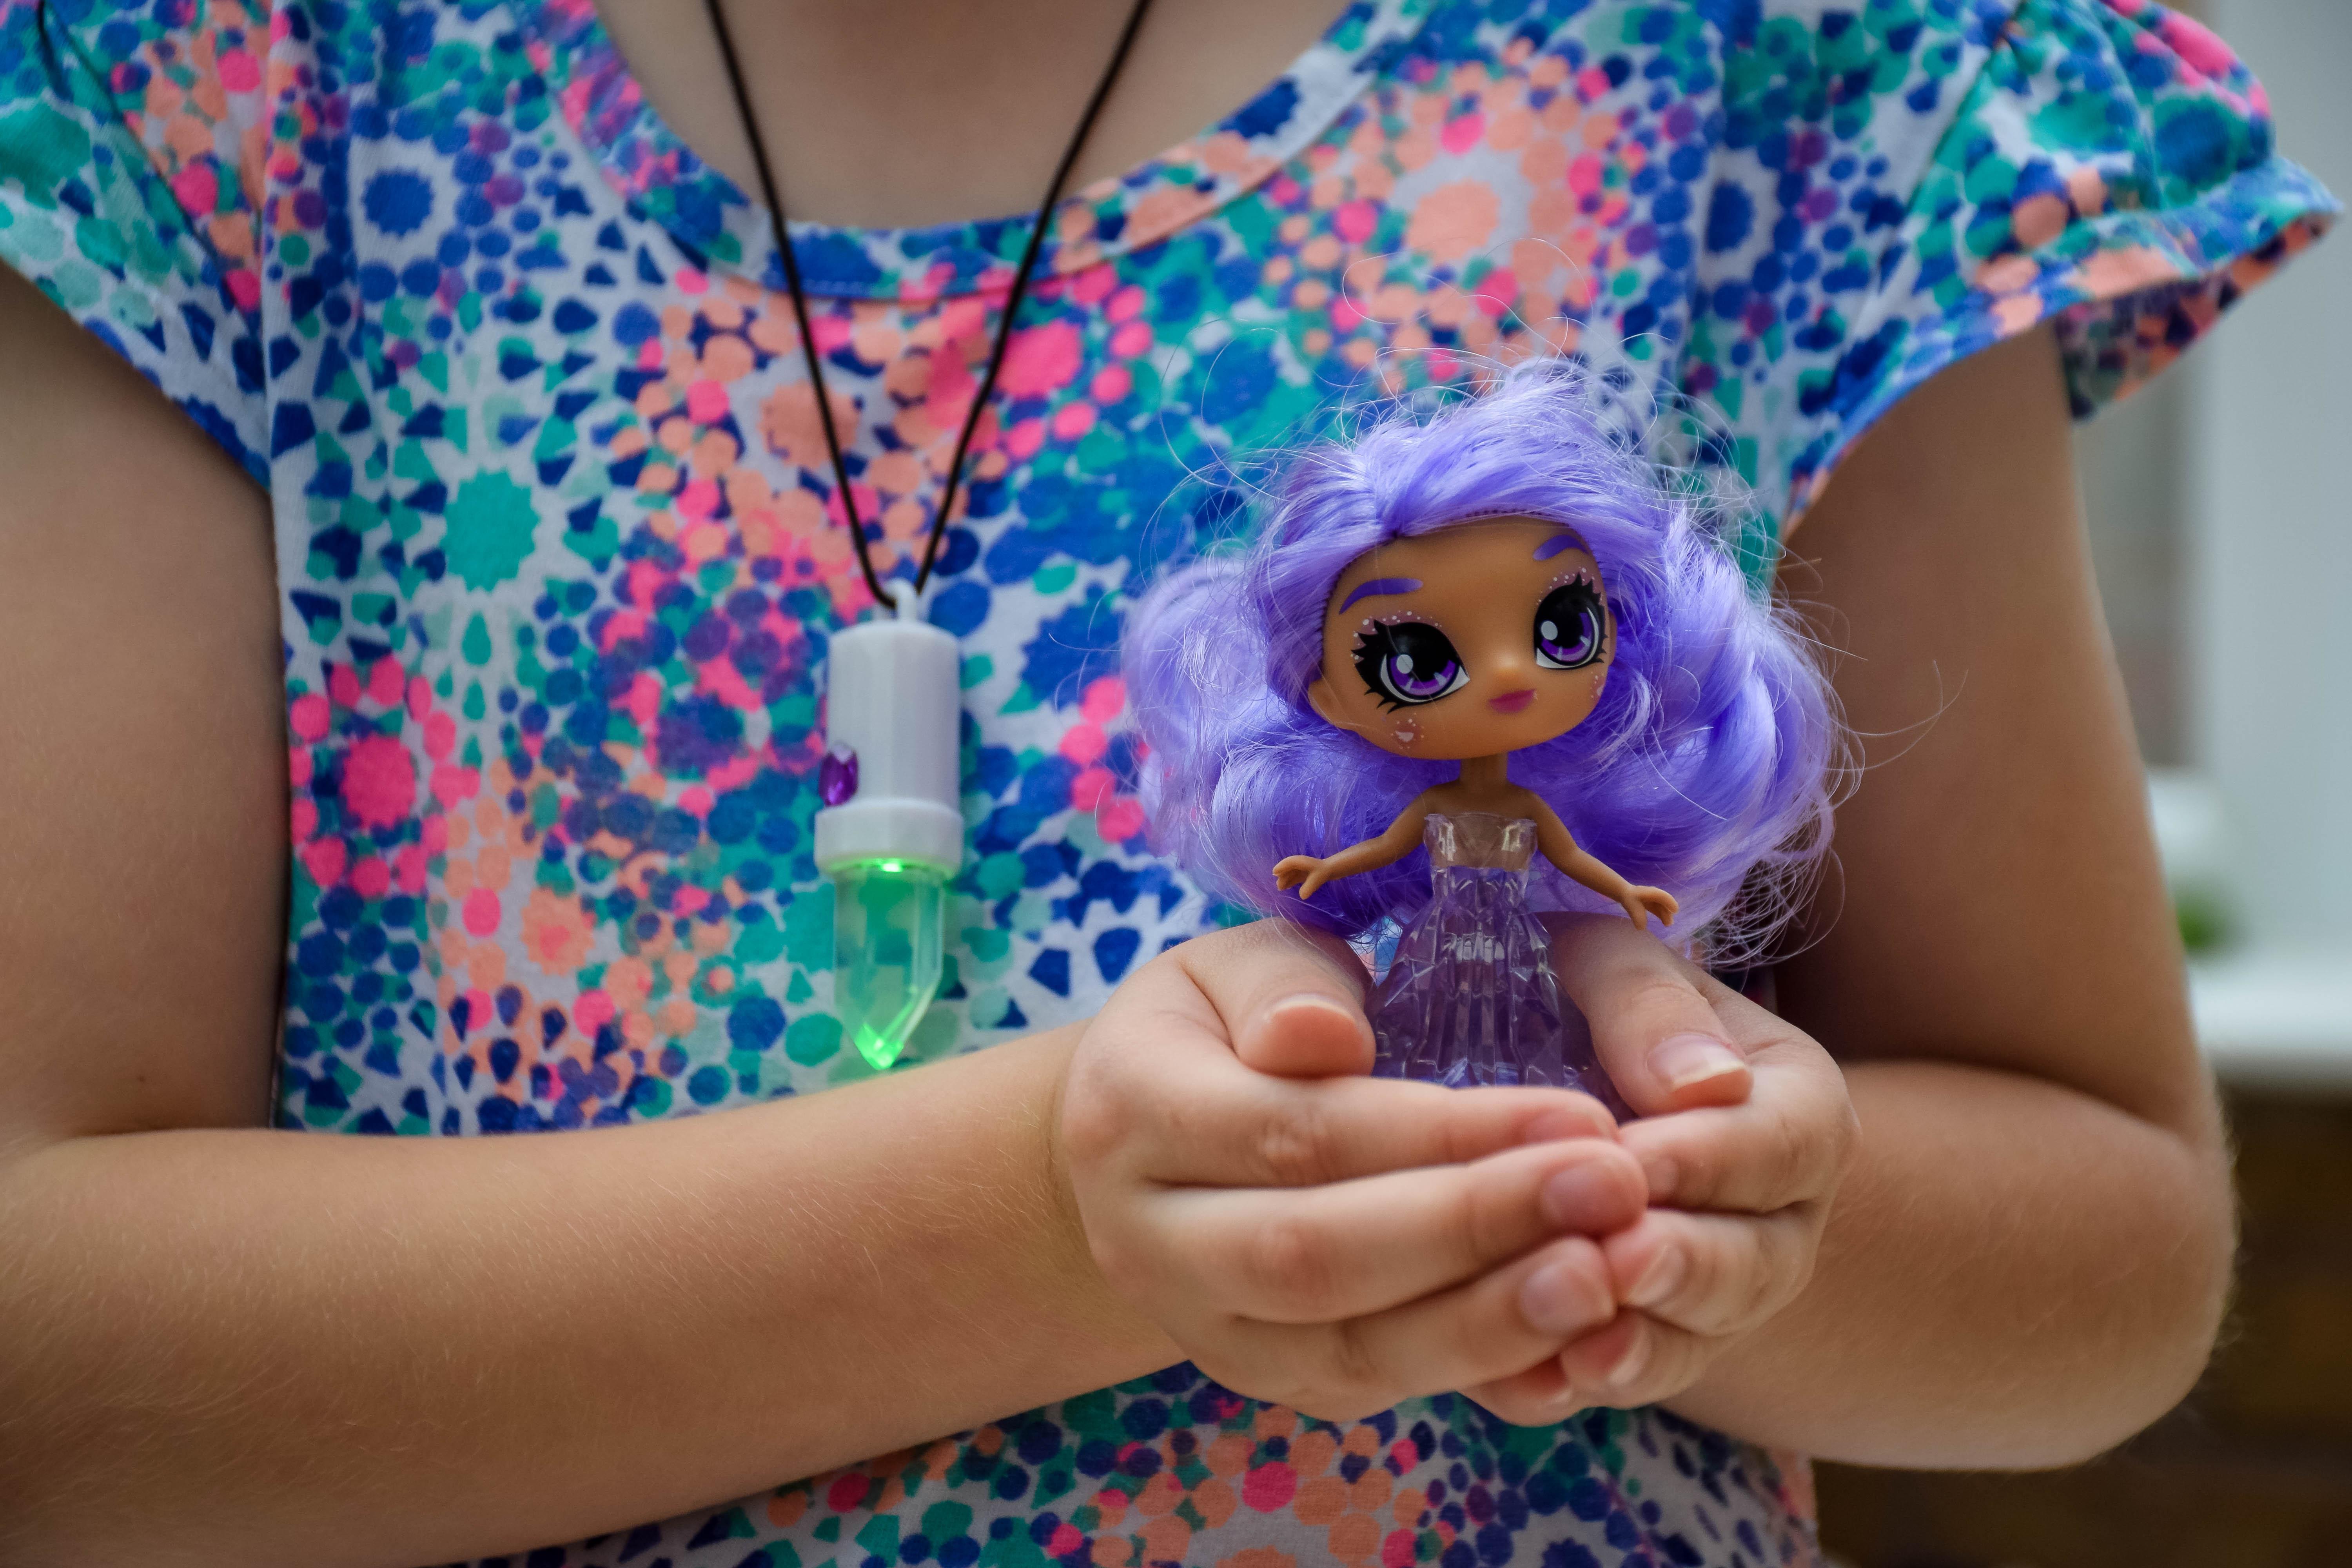 Holding Amethyst, the Crystalina sprite in our hands.